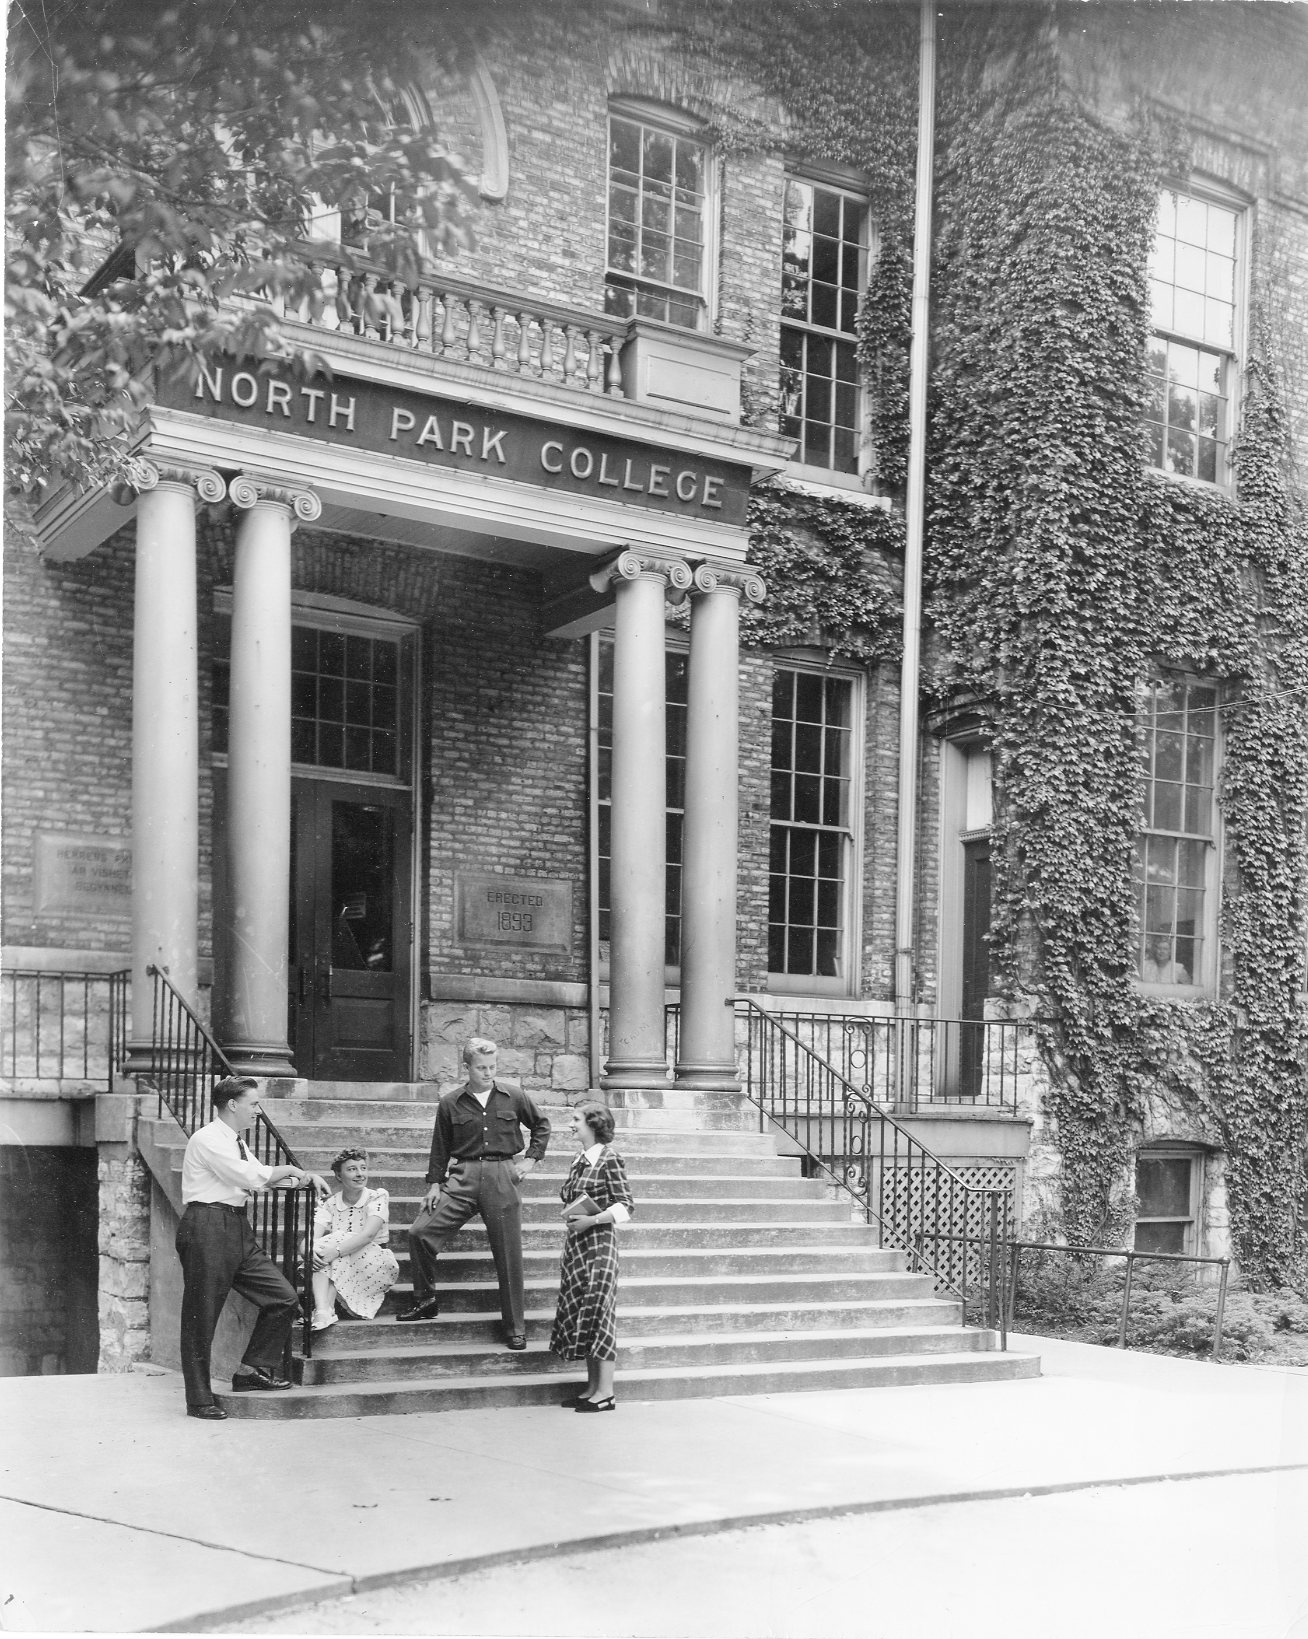 North Park University Archives featured image background